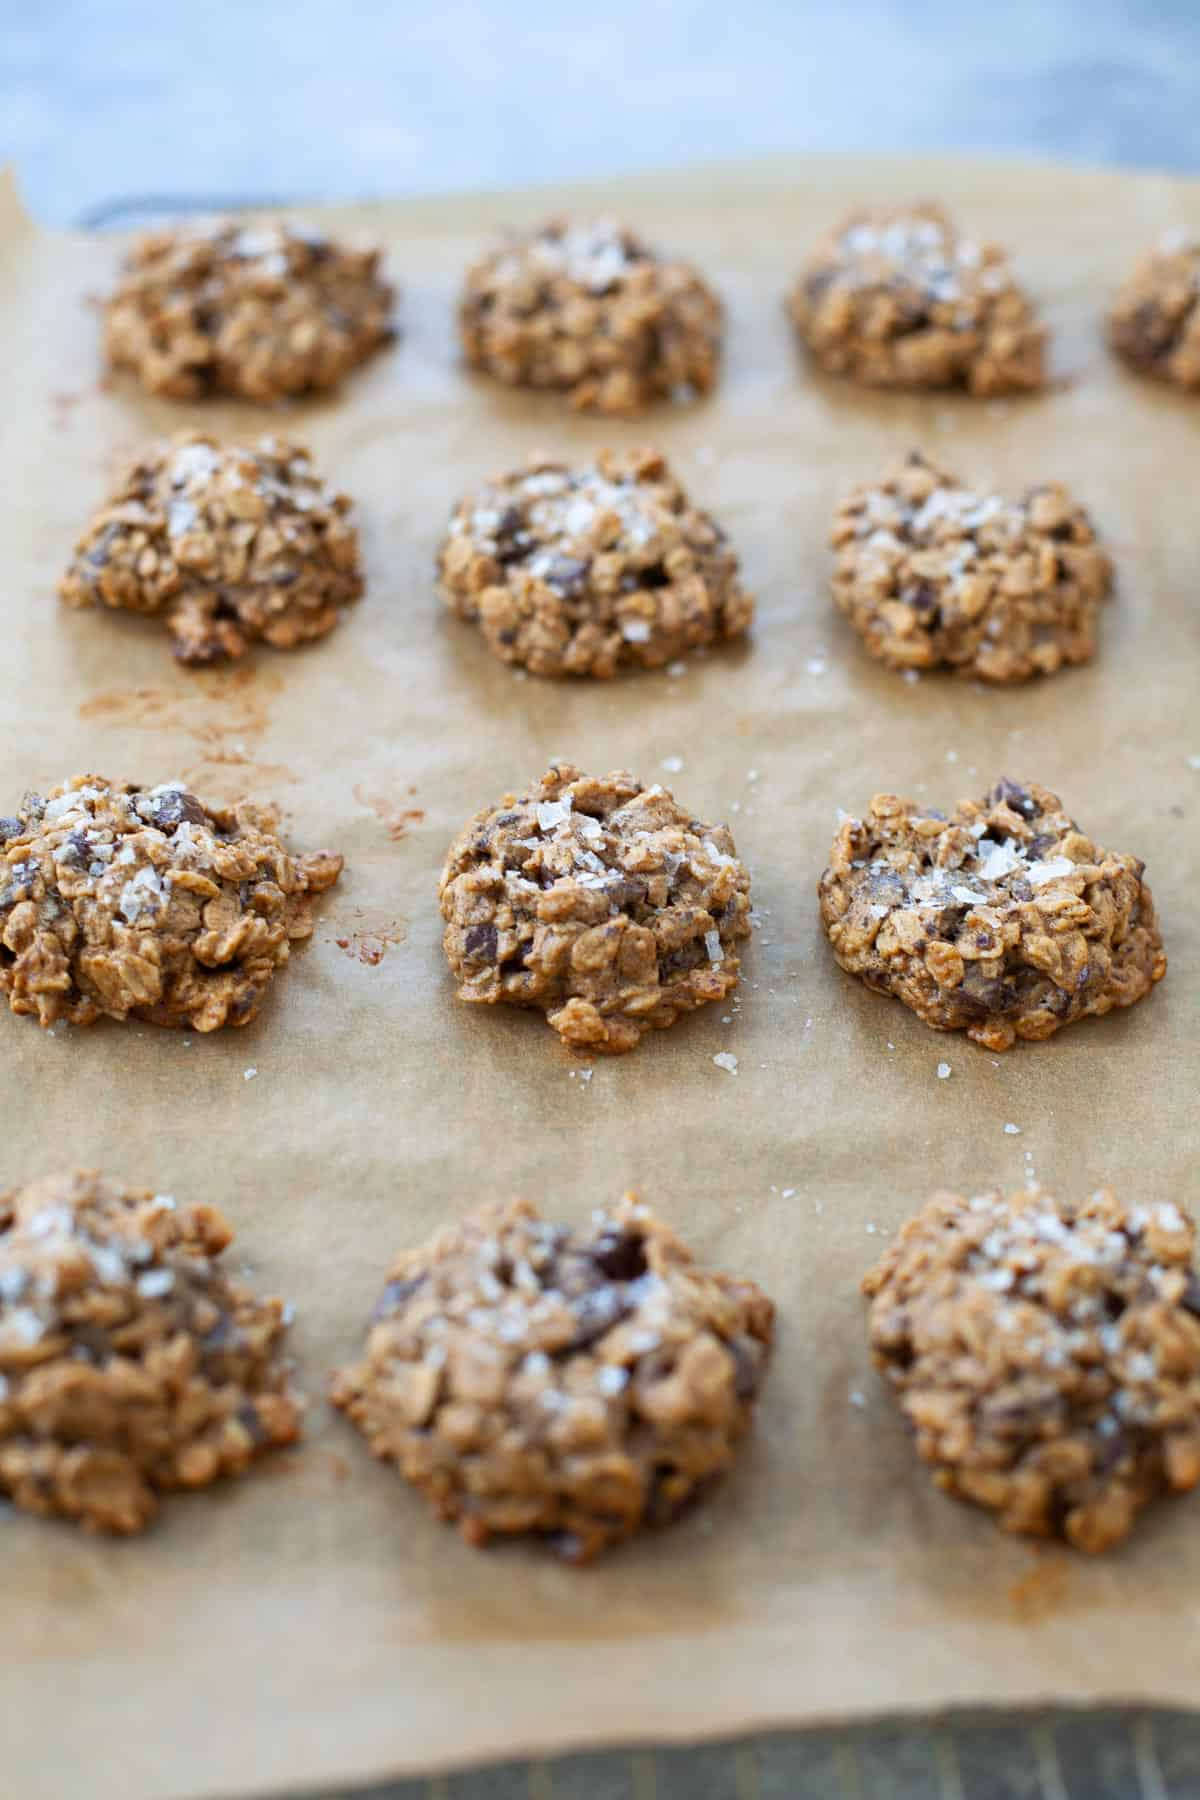 vegan peanut butter chocolate chip cookies with sea salt spread out on baking sheet